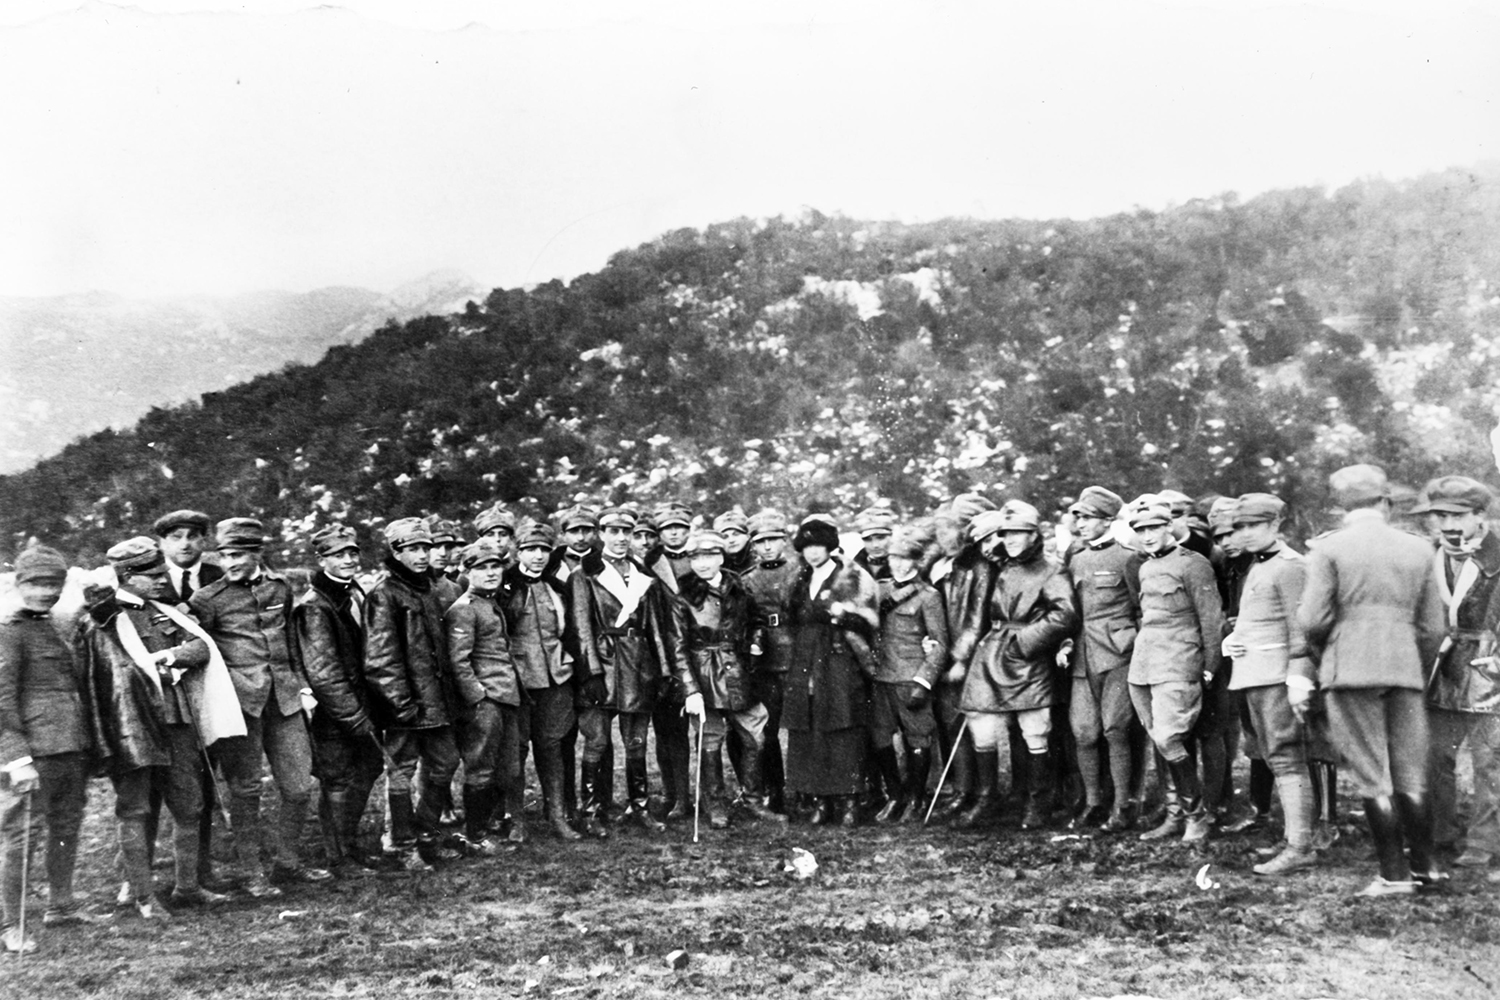 Gabriele D'Annunzio and supporters in Fiume. 1919.